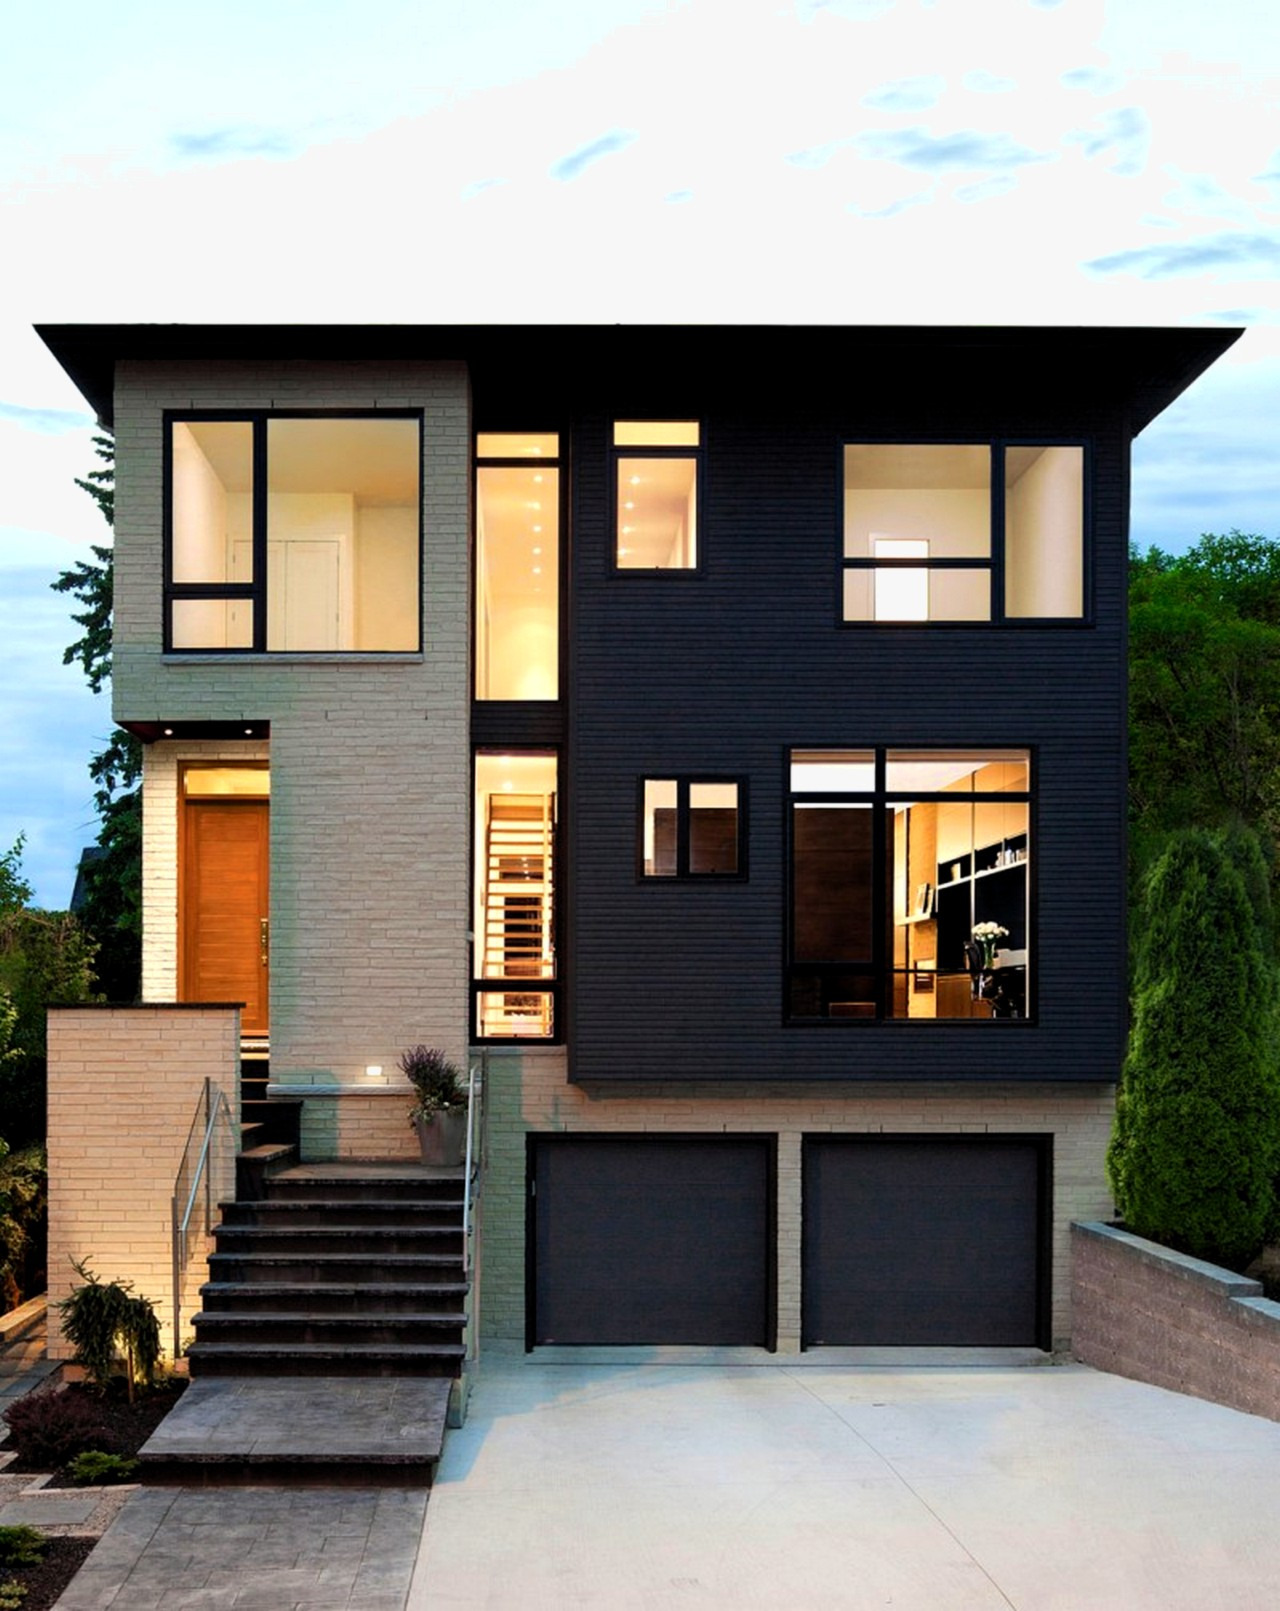 Minimalist Ultra Modern House Plans New Architectures Minimalist Home Design 2016 Hovgallery In